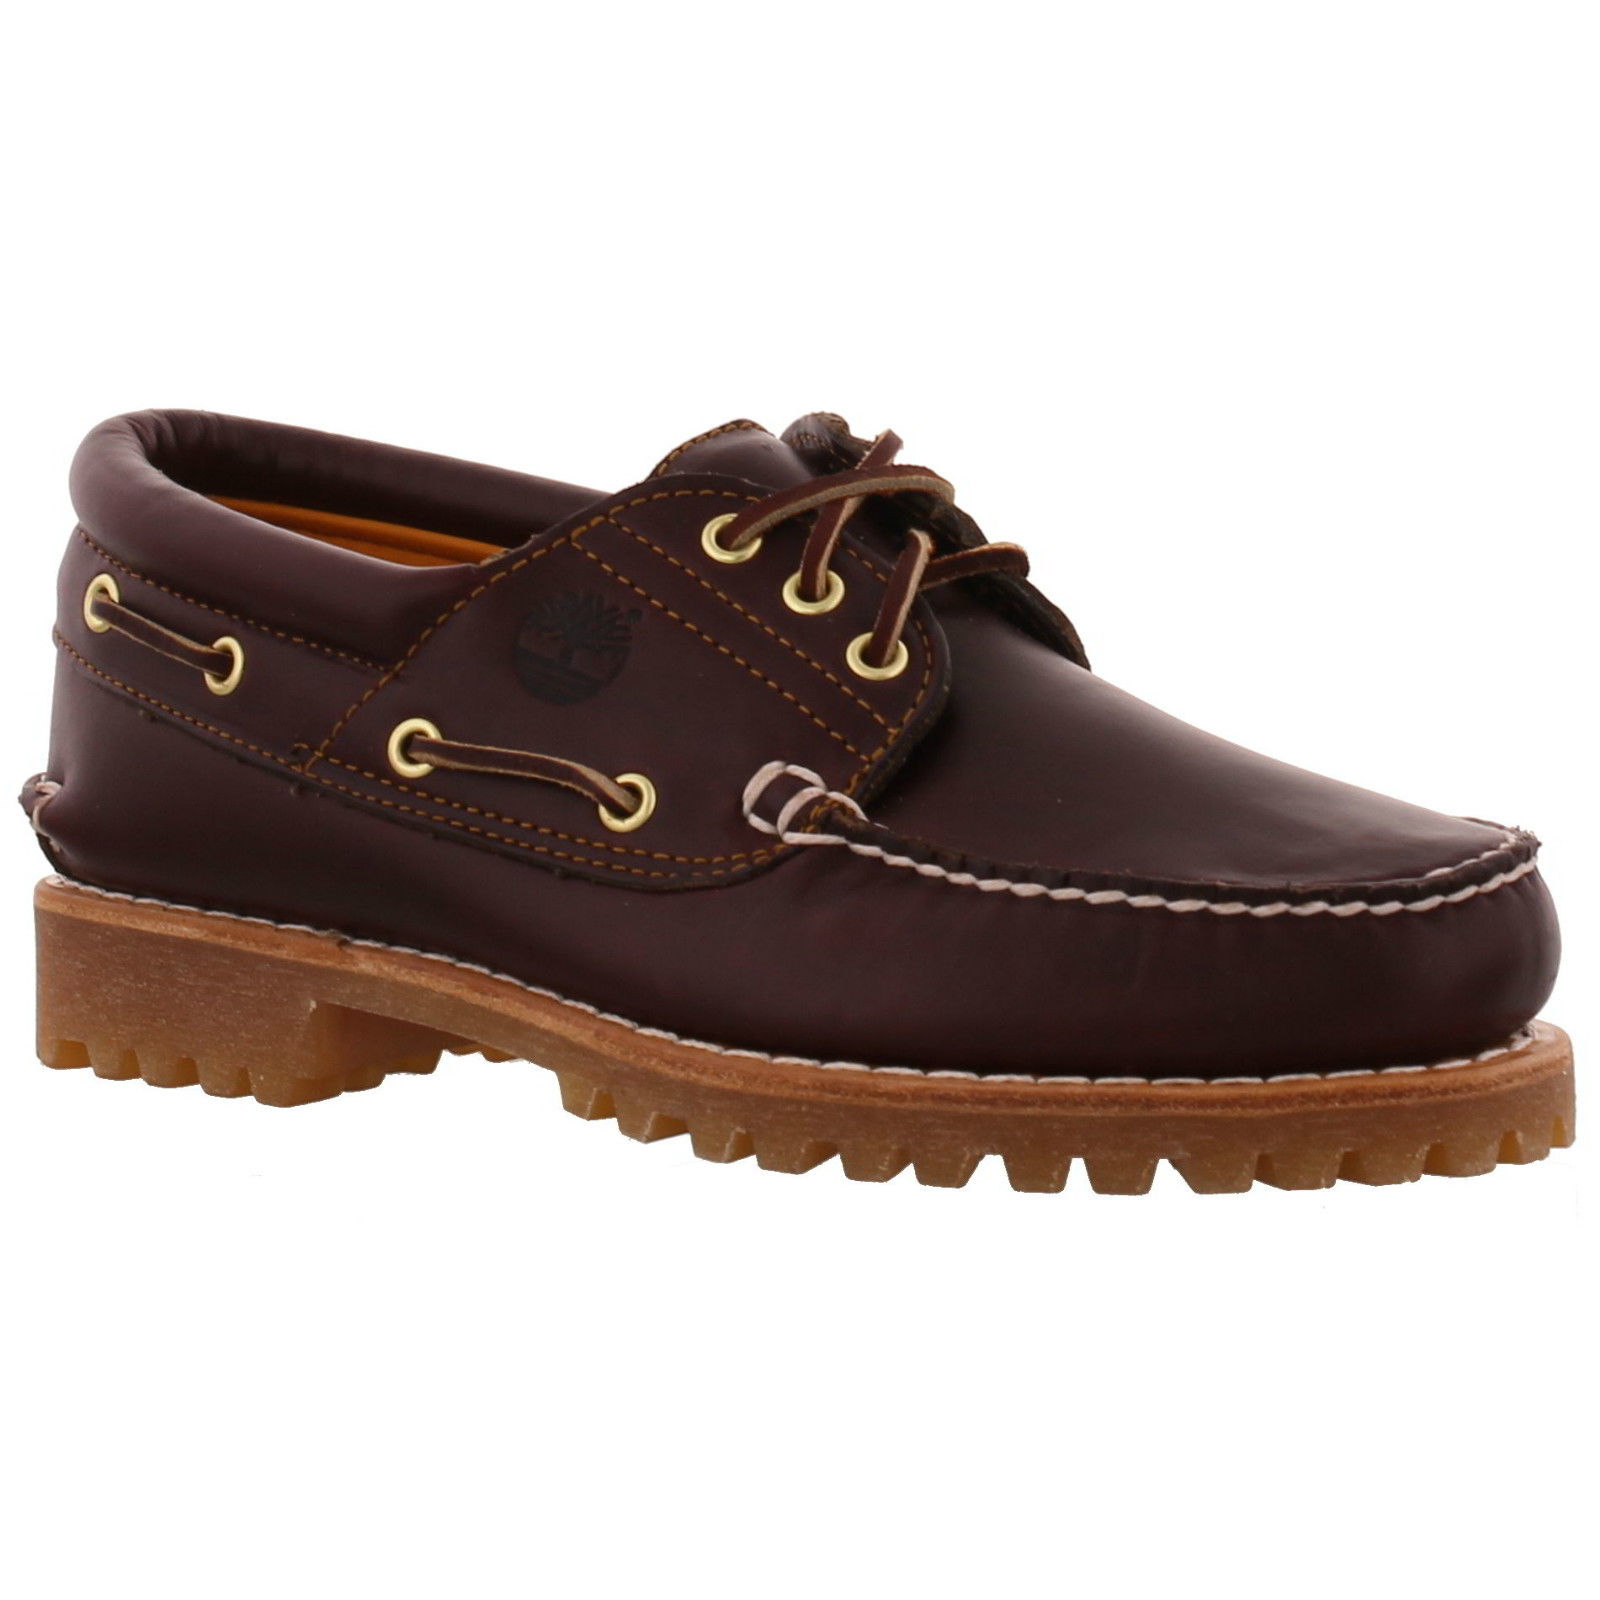 New Timberland 50009 3 Eye Boat Mens Brown Leather Deck Shoes Size...